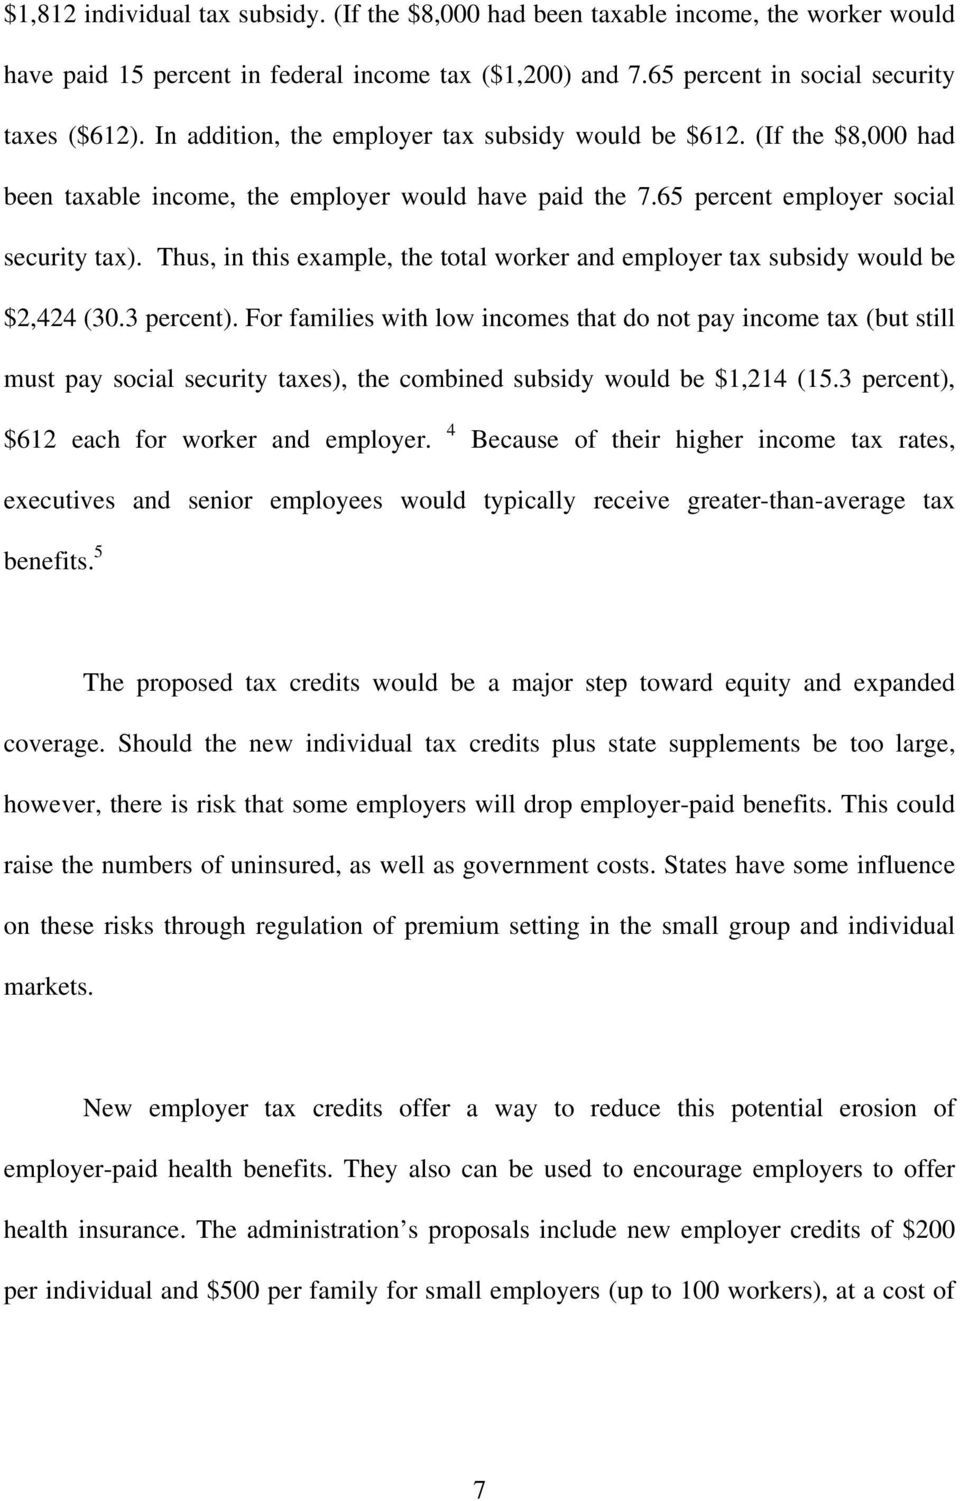 Thus, in this example, the total worker and employer tax subsidy would be $2,424 (30.3 percent).